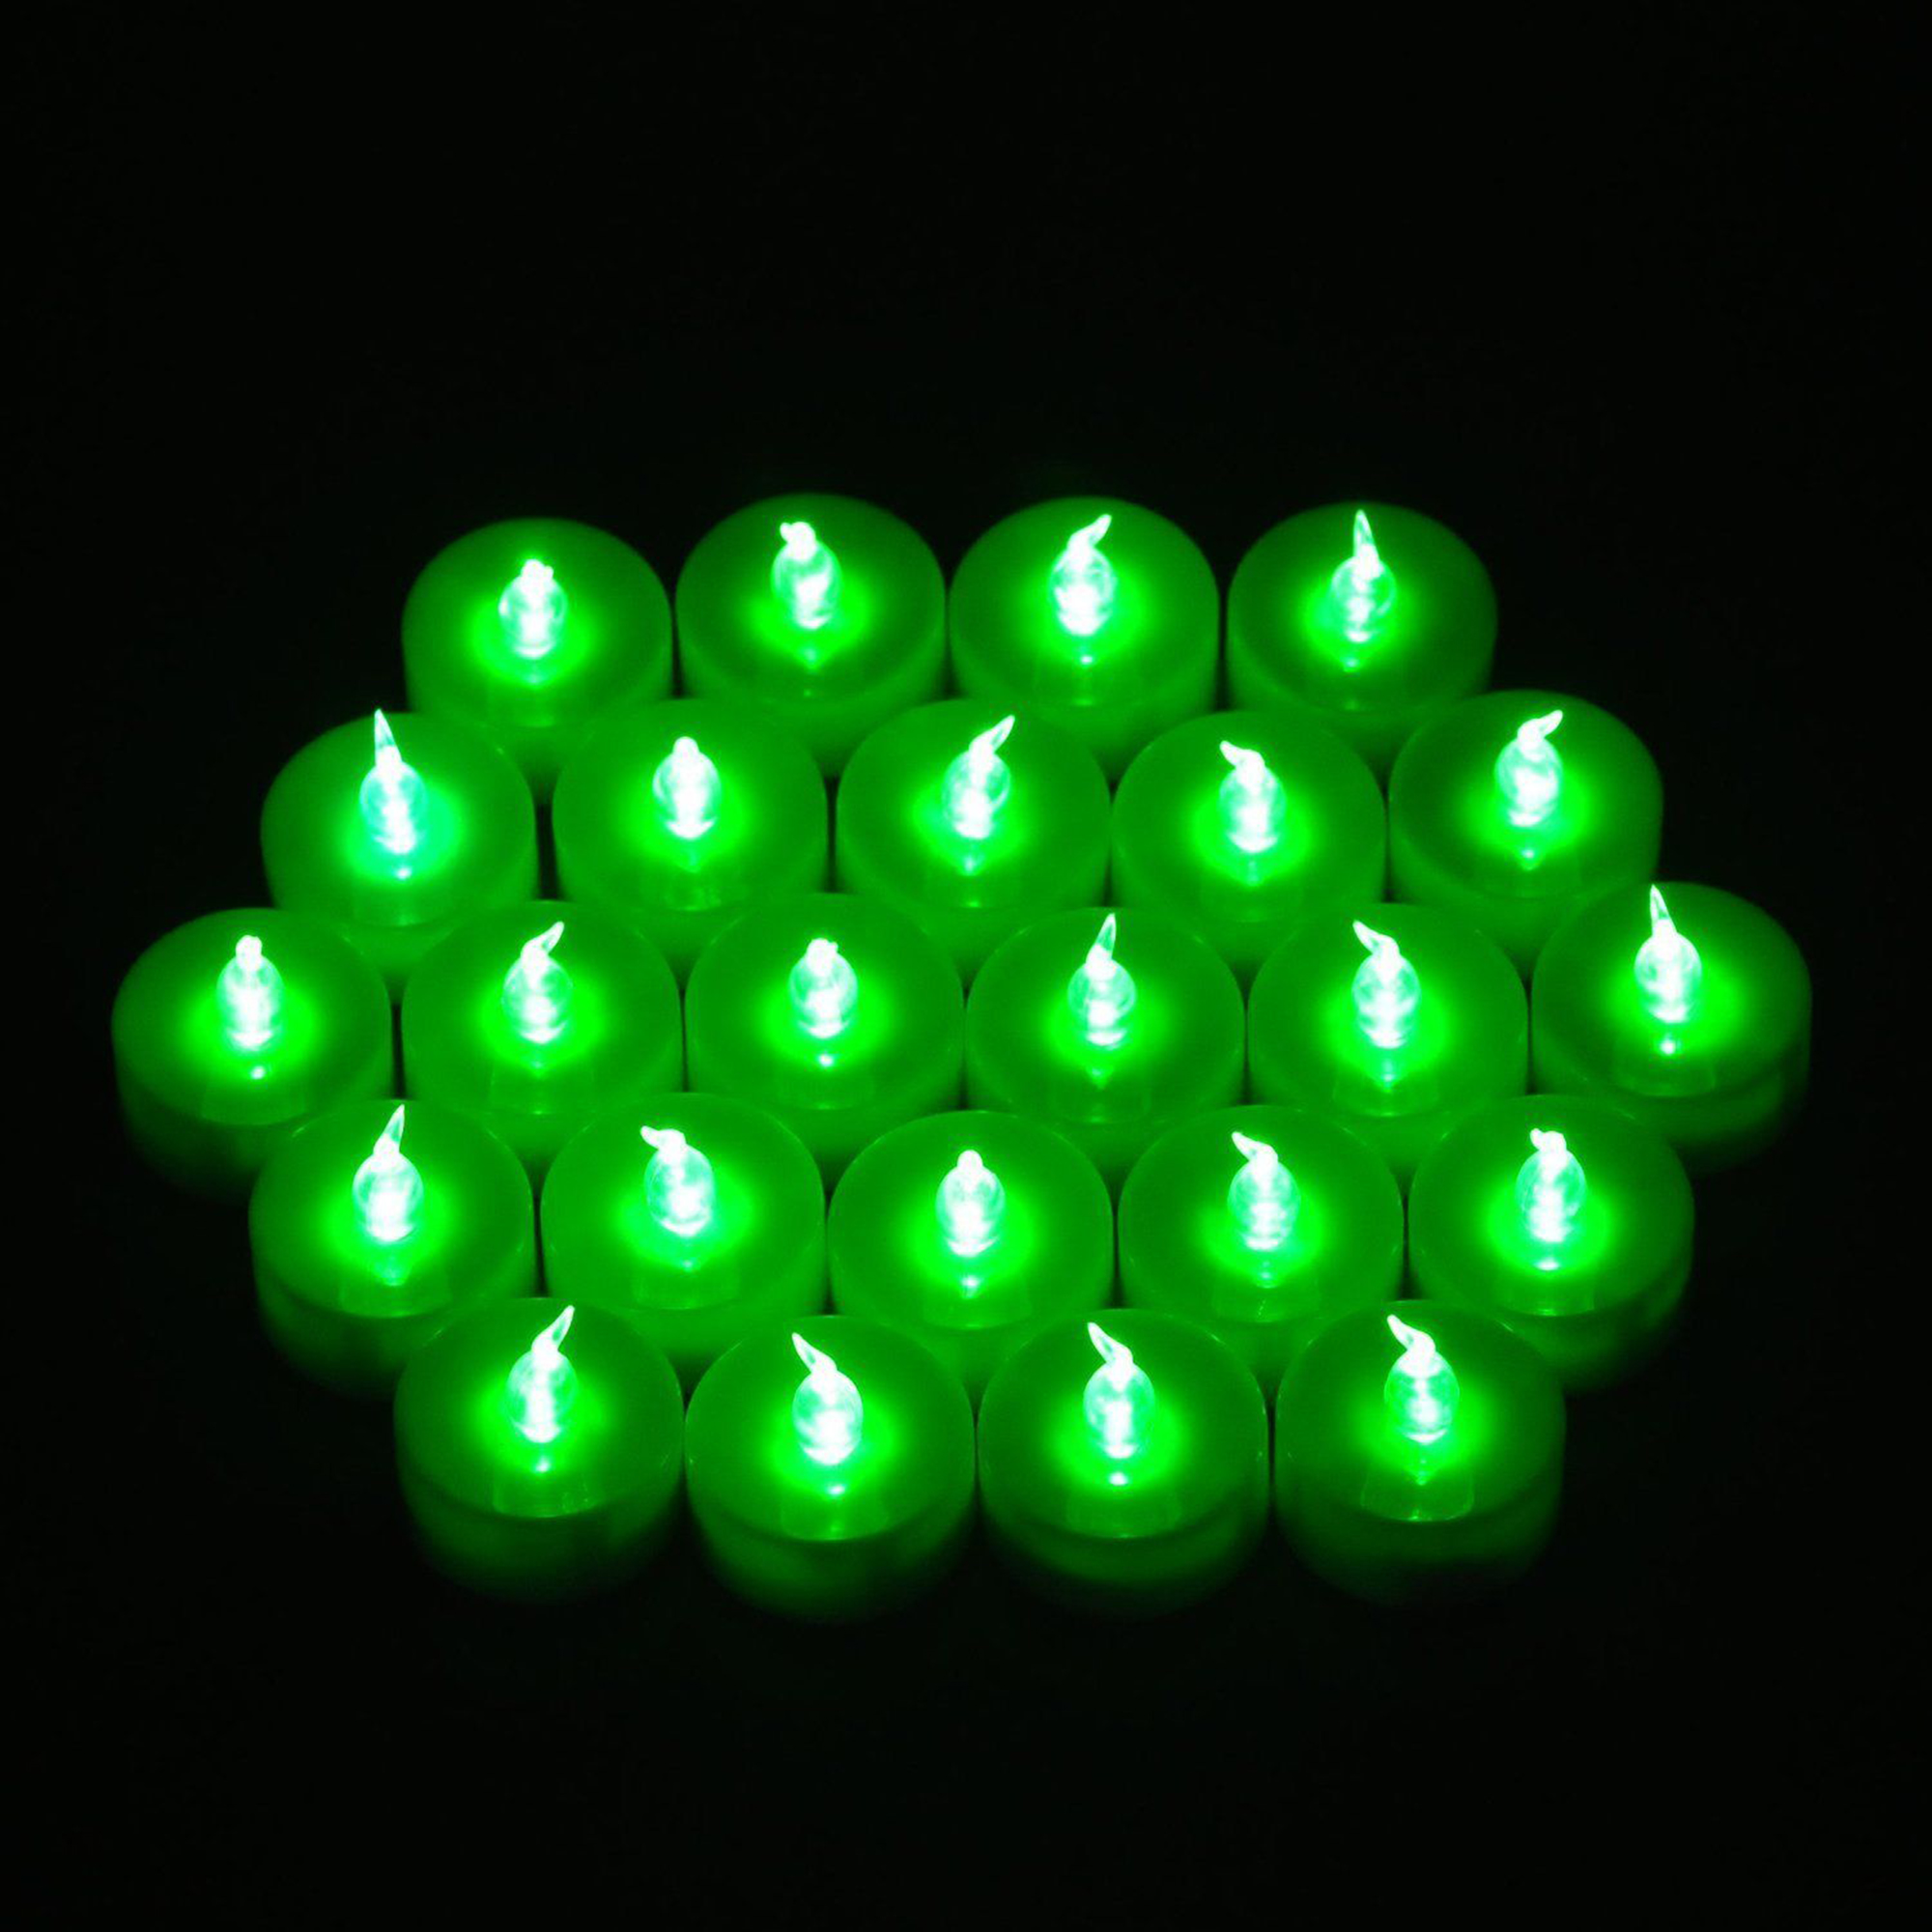 WEANAS 24pcs LED Green Tea Light Tealight Candles with Timer Timing Unscented Flickering Flameless for Christmas Birthday Wedding Party (Green)